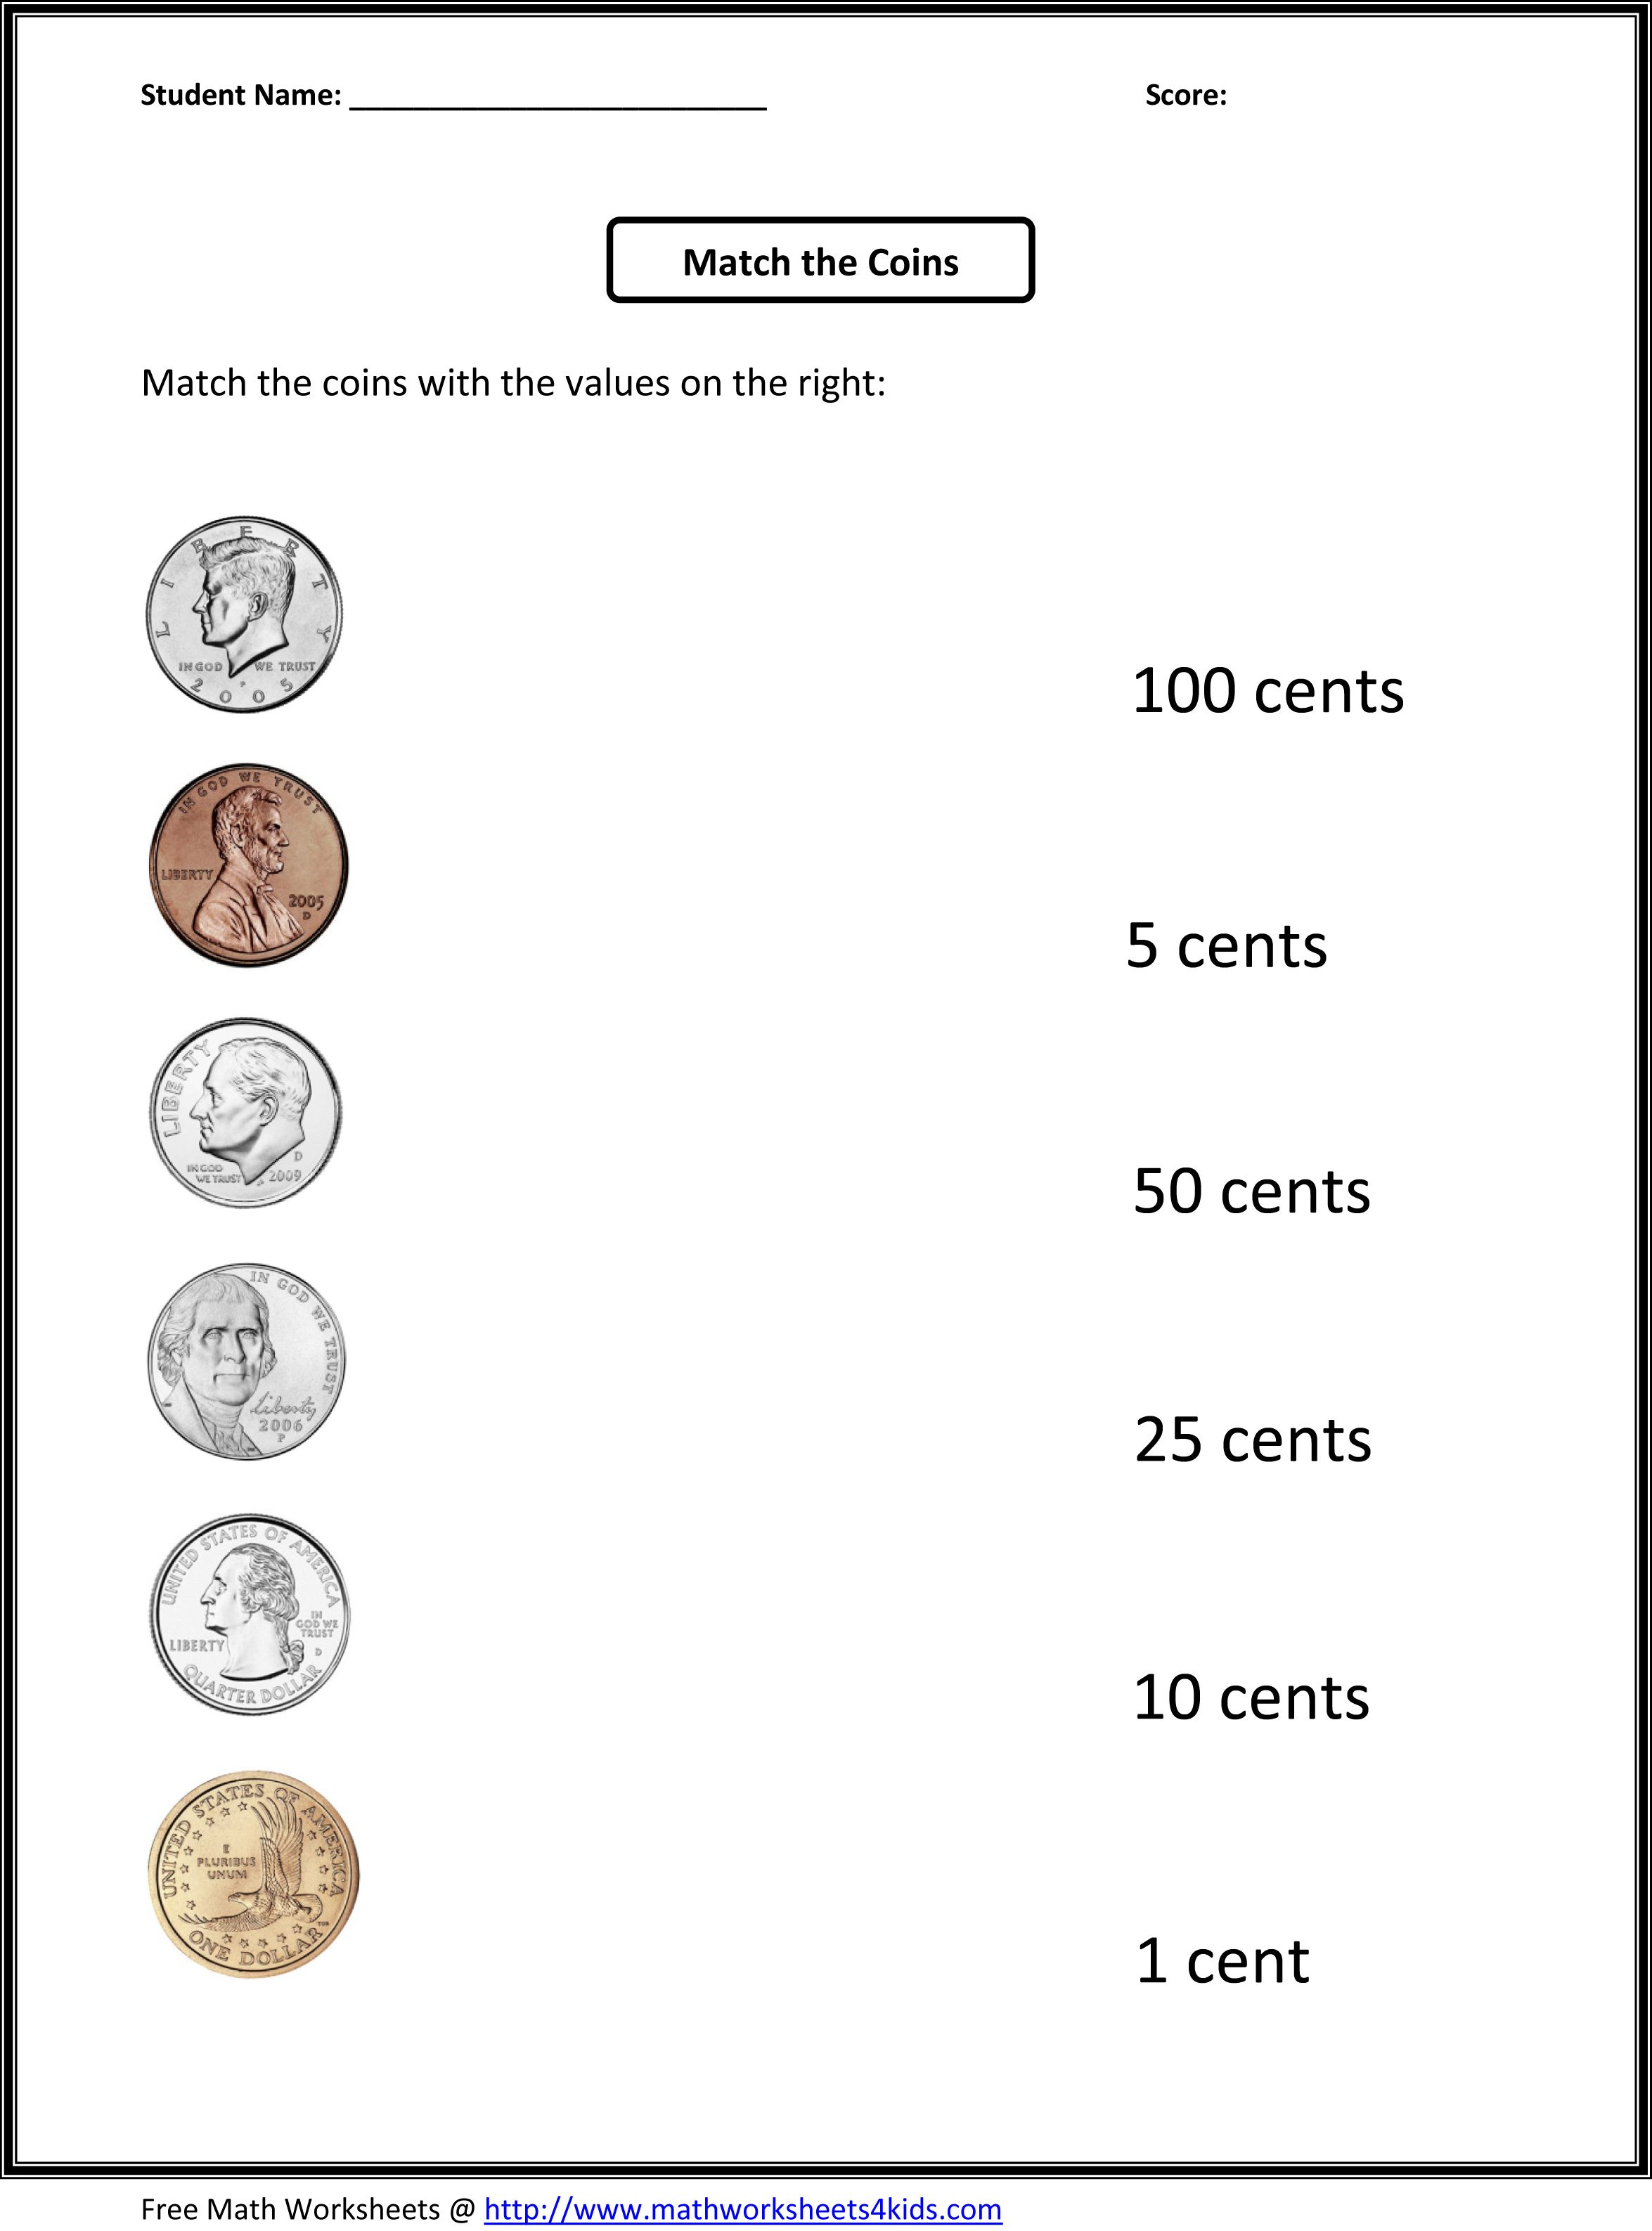 Free 1St Grade Worksheets | Match The Coins And Its Values - Free | Free Printable Money Worksheets For Kindergarten